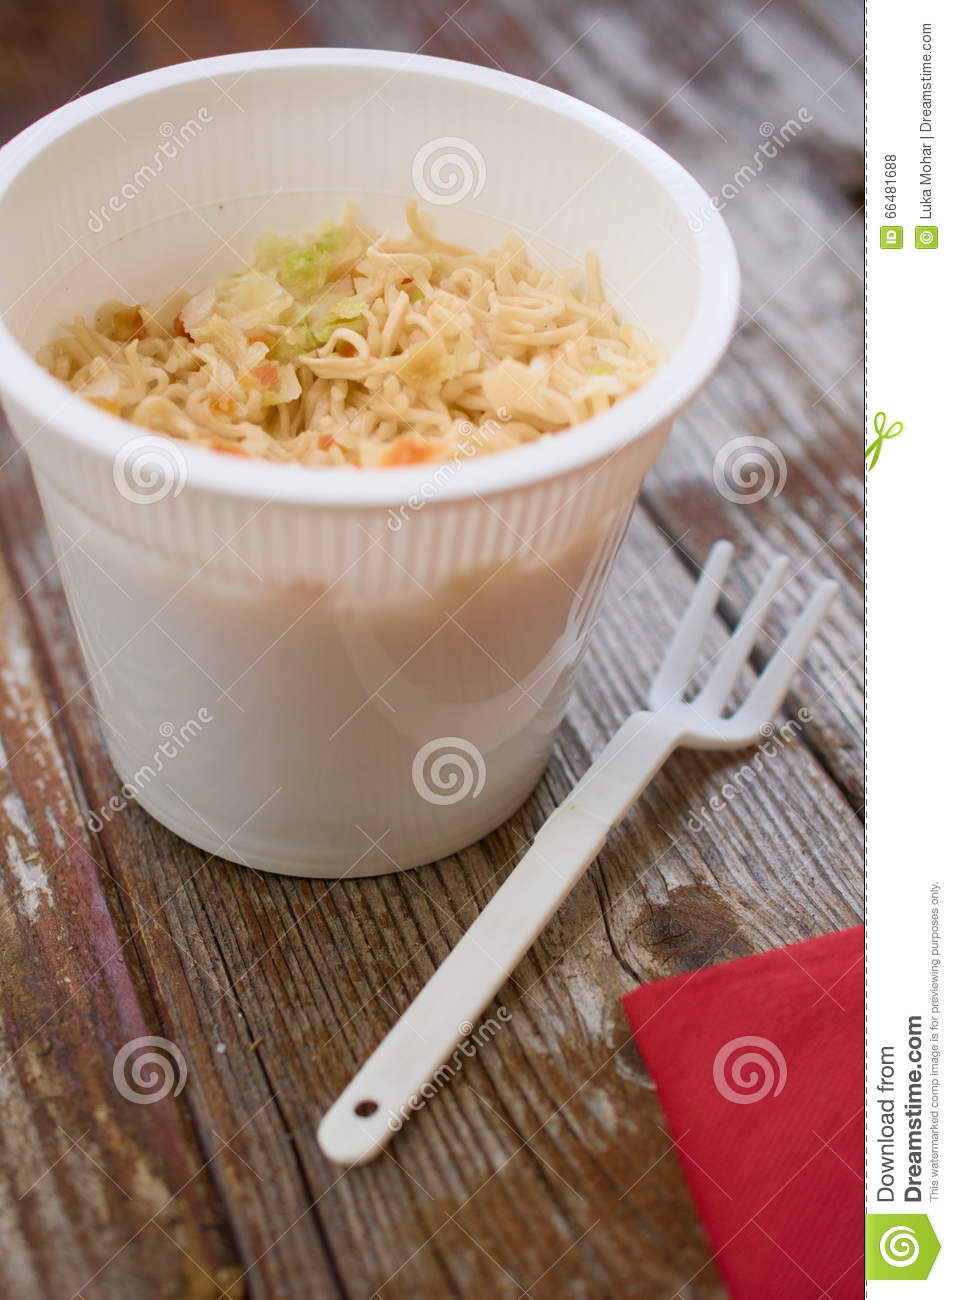 Cupanoodles Pasta Ramen In Plastic Cup On Wood Table